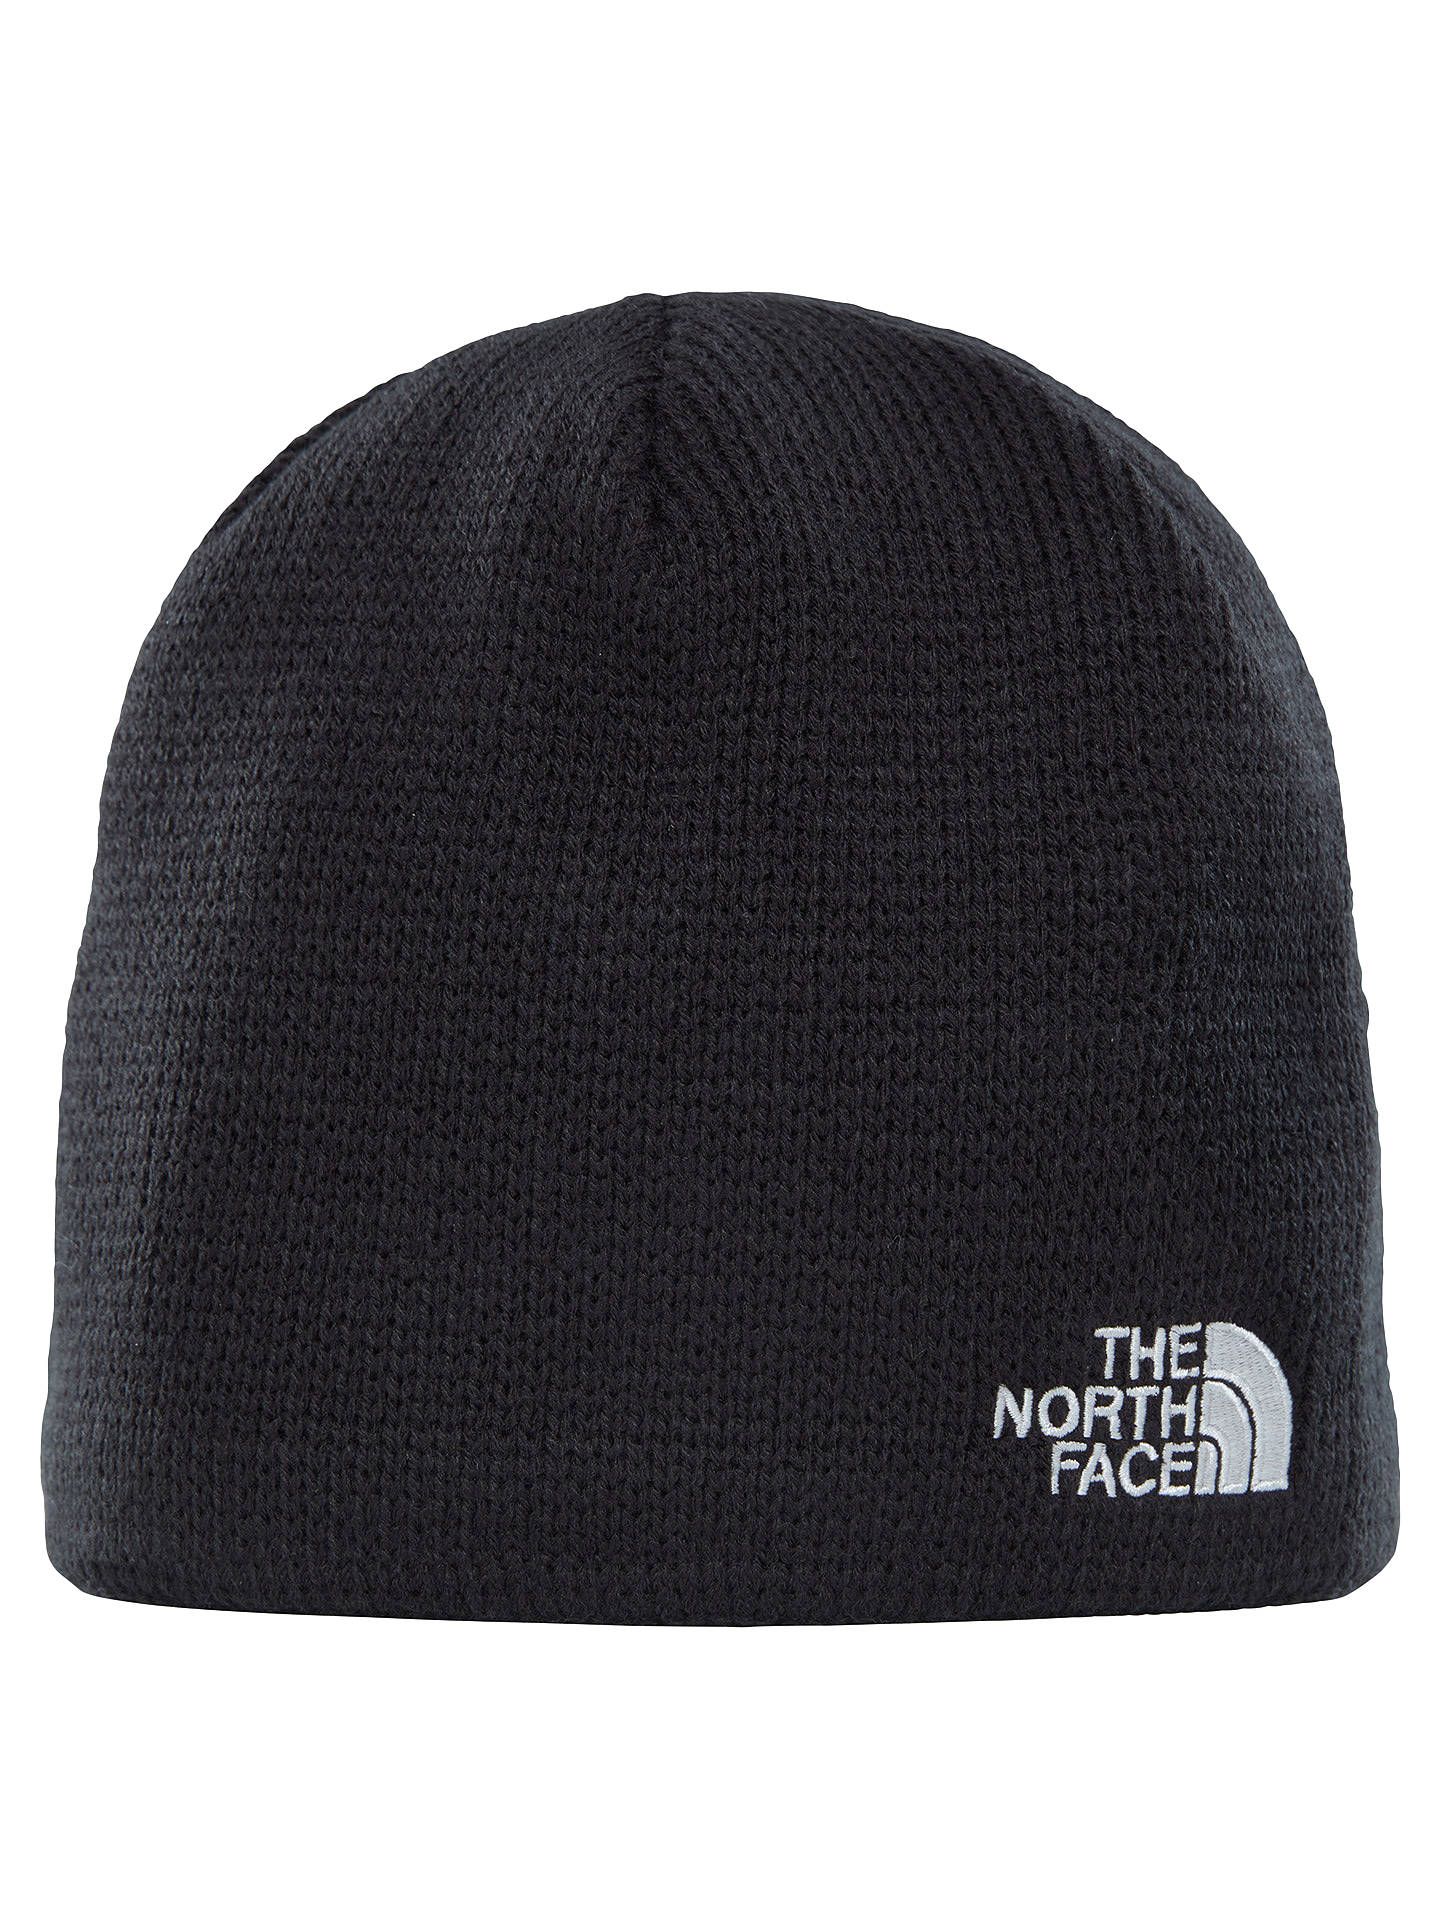 7f98d8f912c BuyThe North Face Bones Beanie